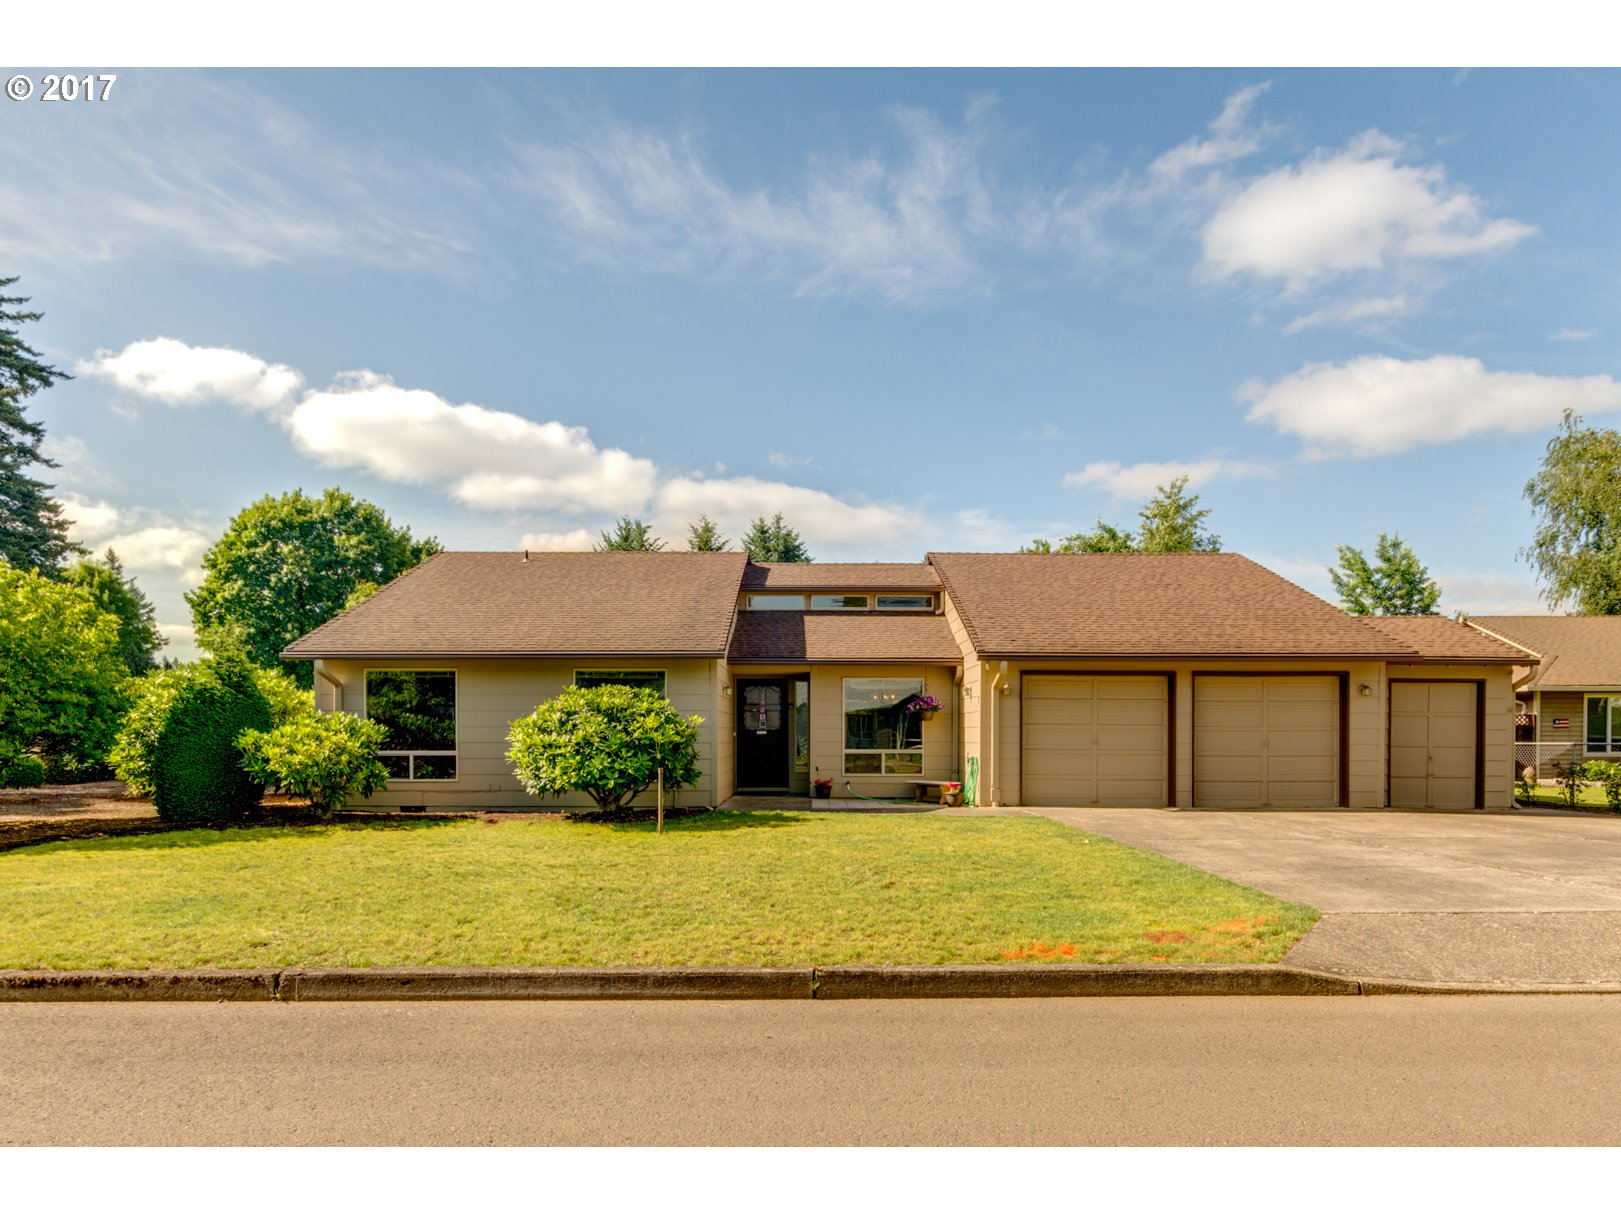 695 NE 22ND AVE, Canby, OR 97013